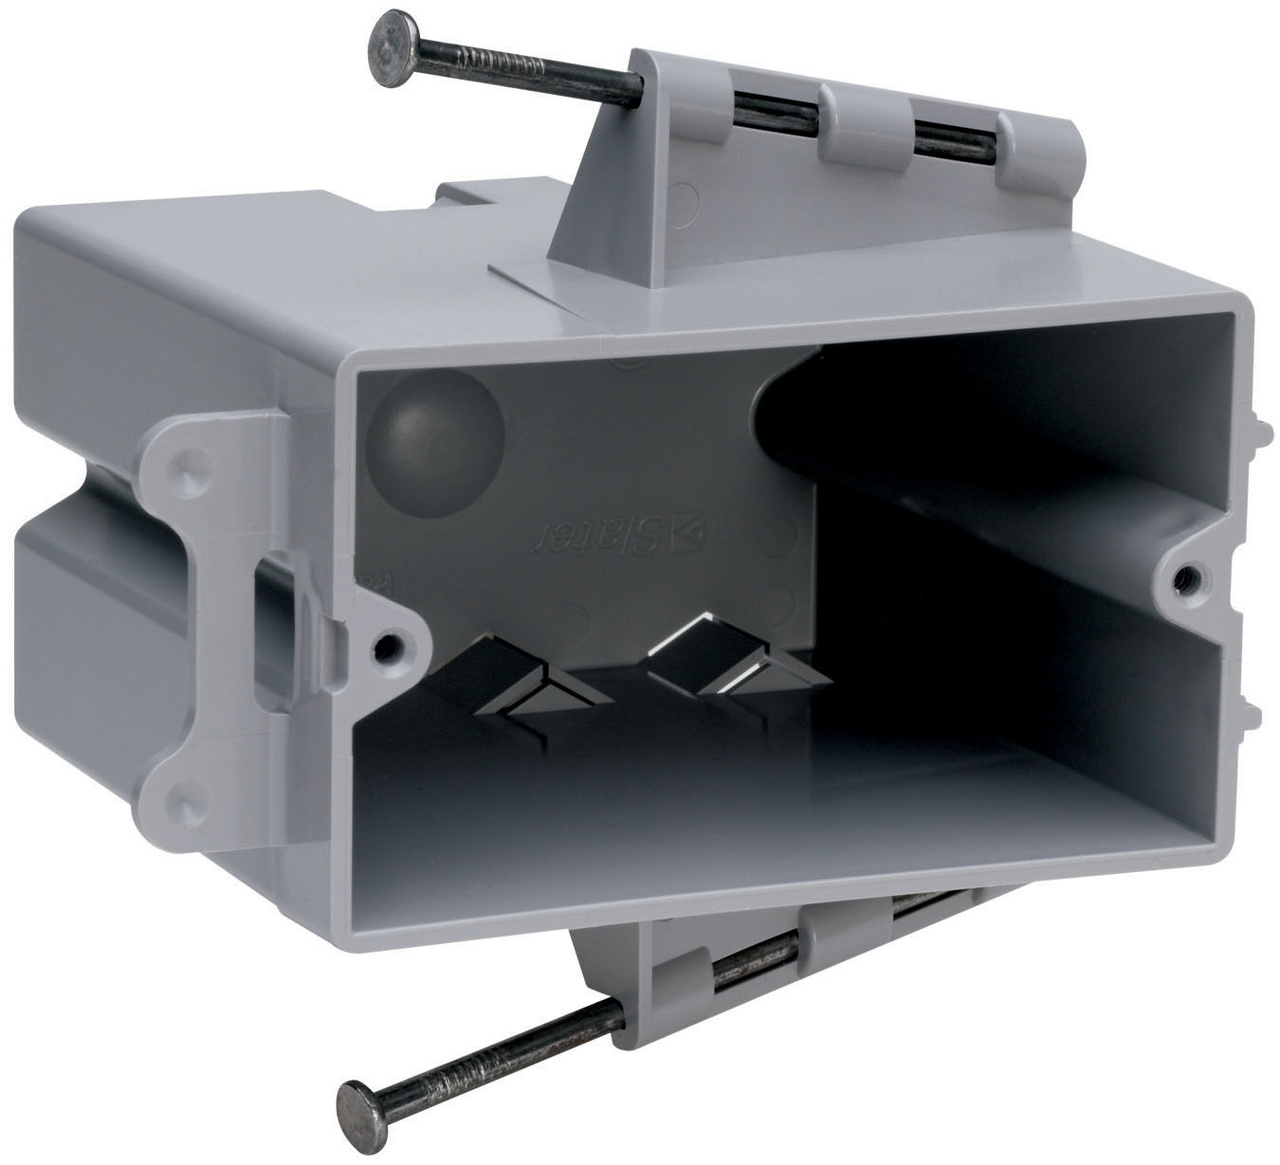 Switch & Outlet Box, PH122R